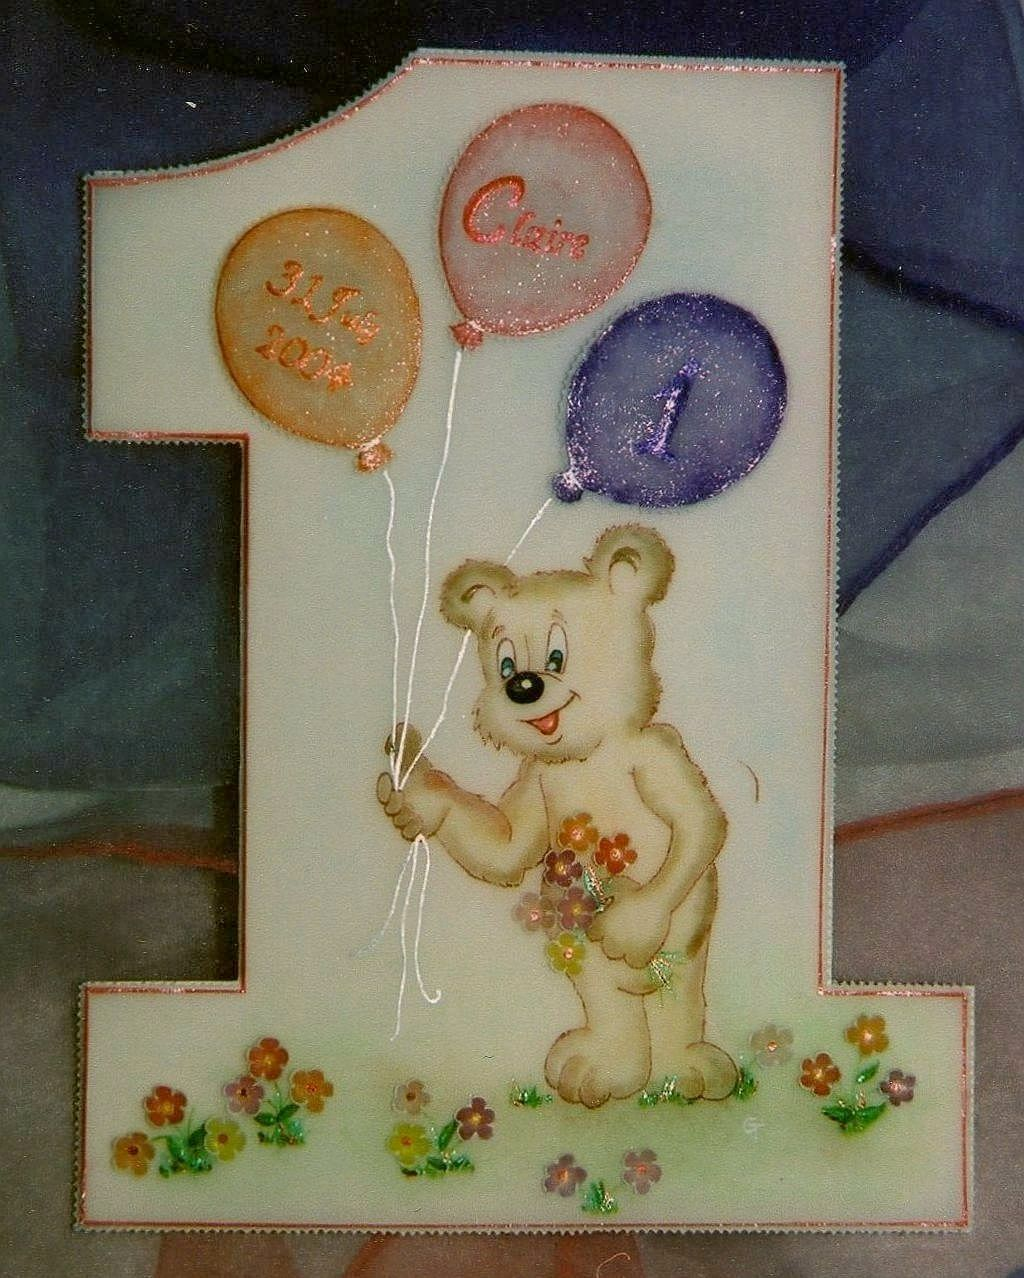 Teddy With Bright Balloons On A Birthday Card For A 1 Year -9559